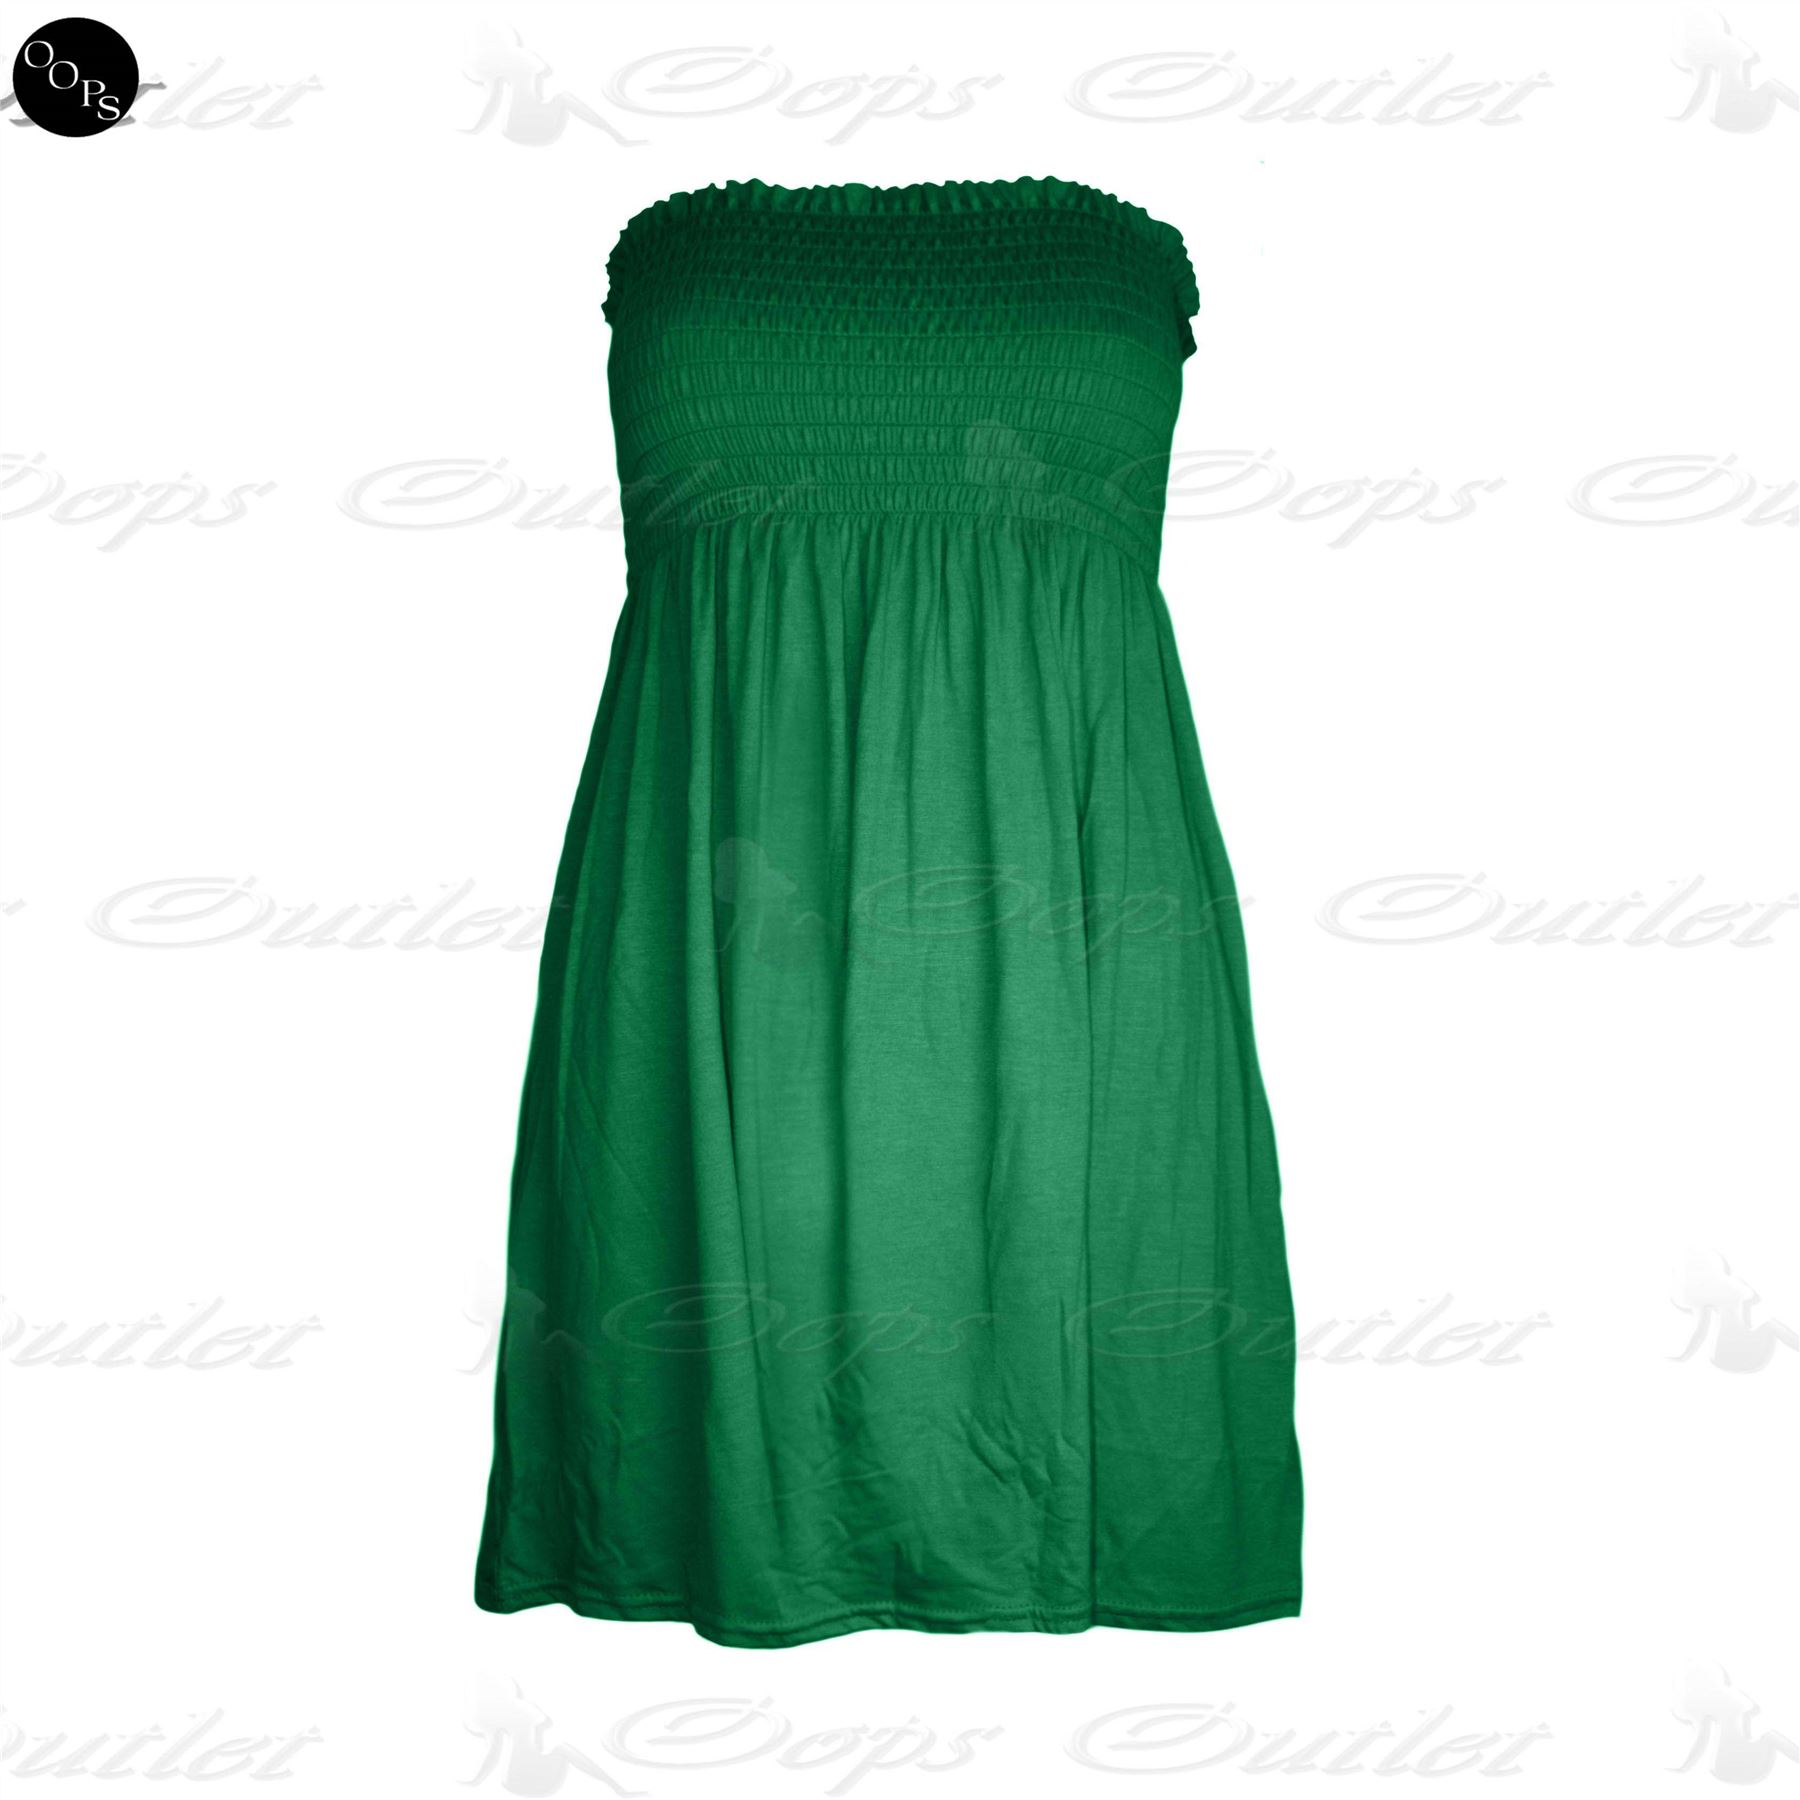 New-Womens-Ruched-Jersey-Plain-Ladies-Sheering-Flared-Swing-Bandeau-Boobtube-Top